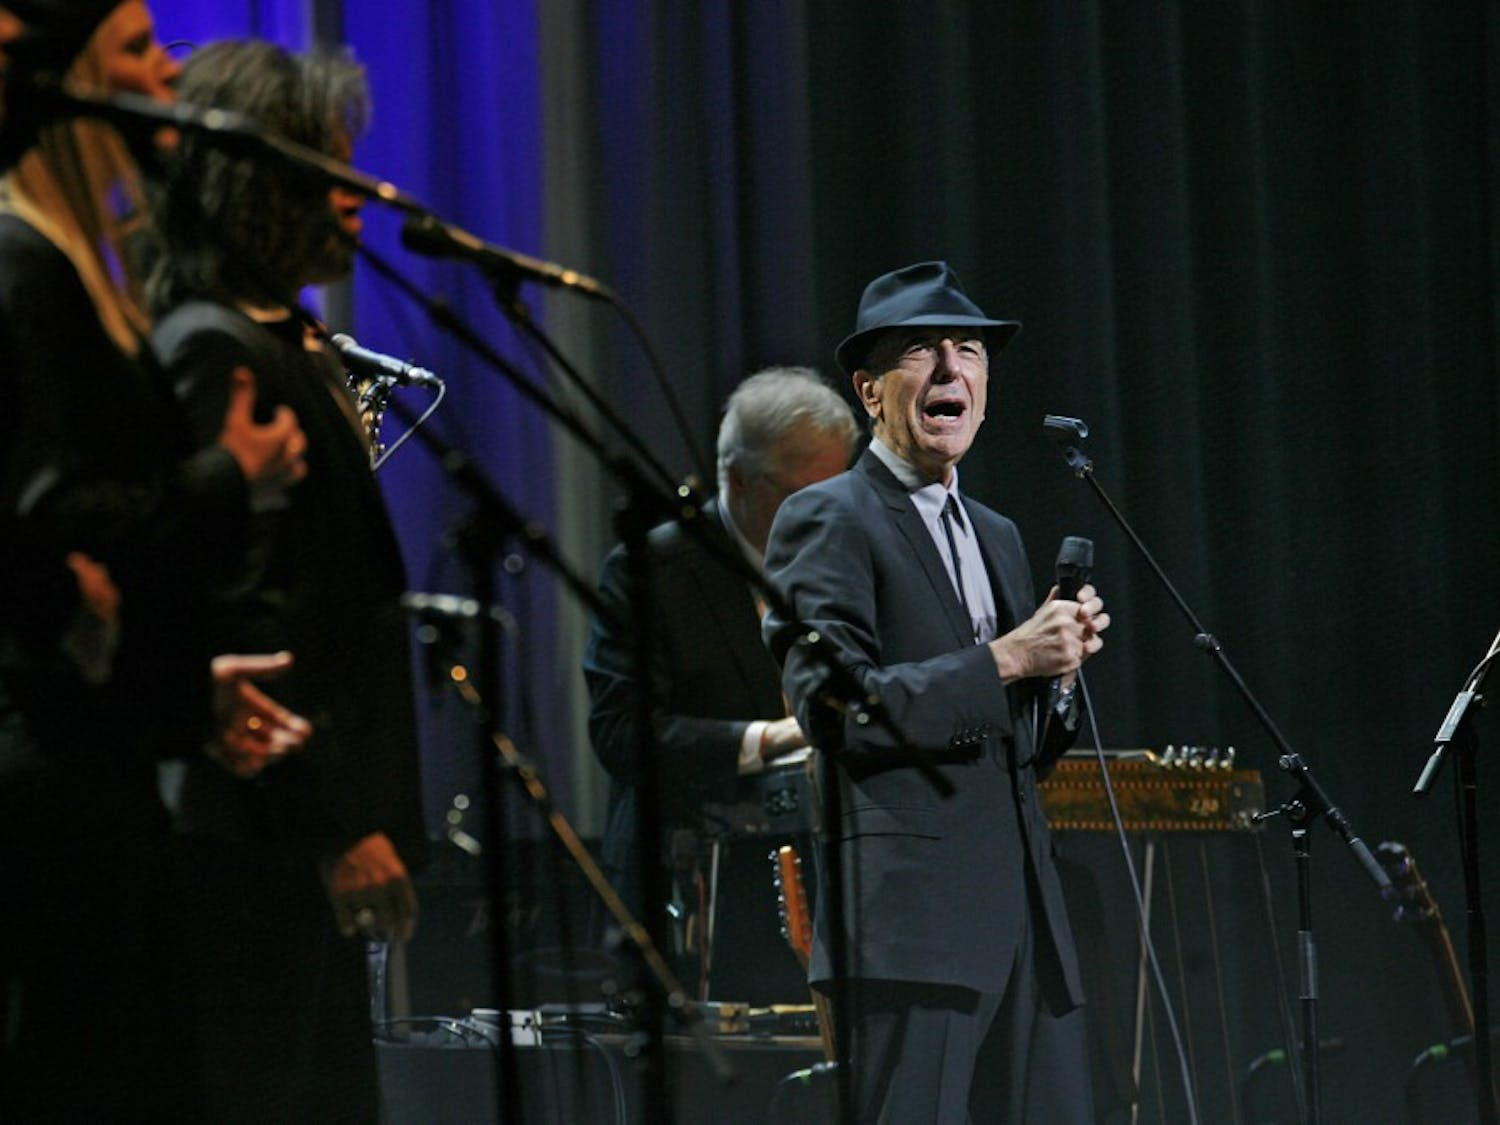 Leonard Cohen performs at the Beacon Theater in New York on February 19, 2009. Cohen, a singer-songwriter whose literary sensibility and elegant dissections of desire made him one of popular music's most influential and admired figures, died on Thursday, Nov. 10, 2016, at 82. (Carolyn Cole/Los Angeles Times/TNS)